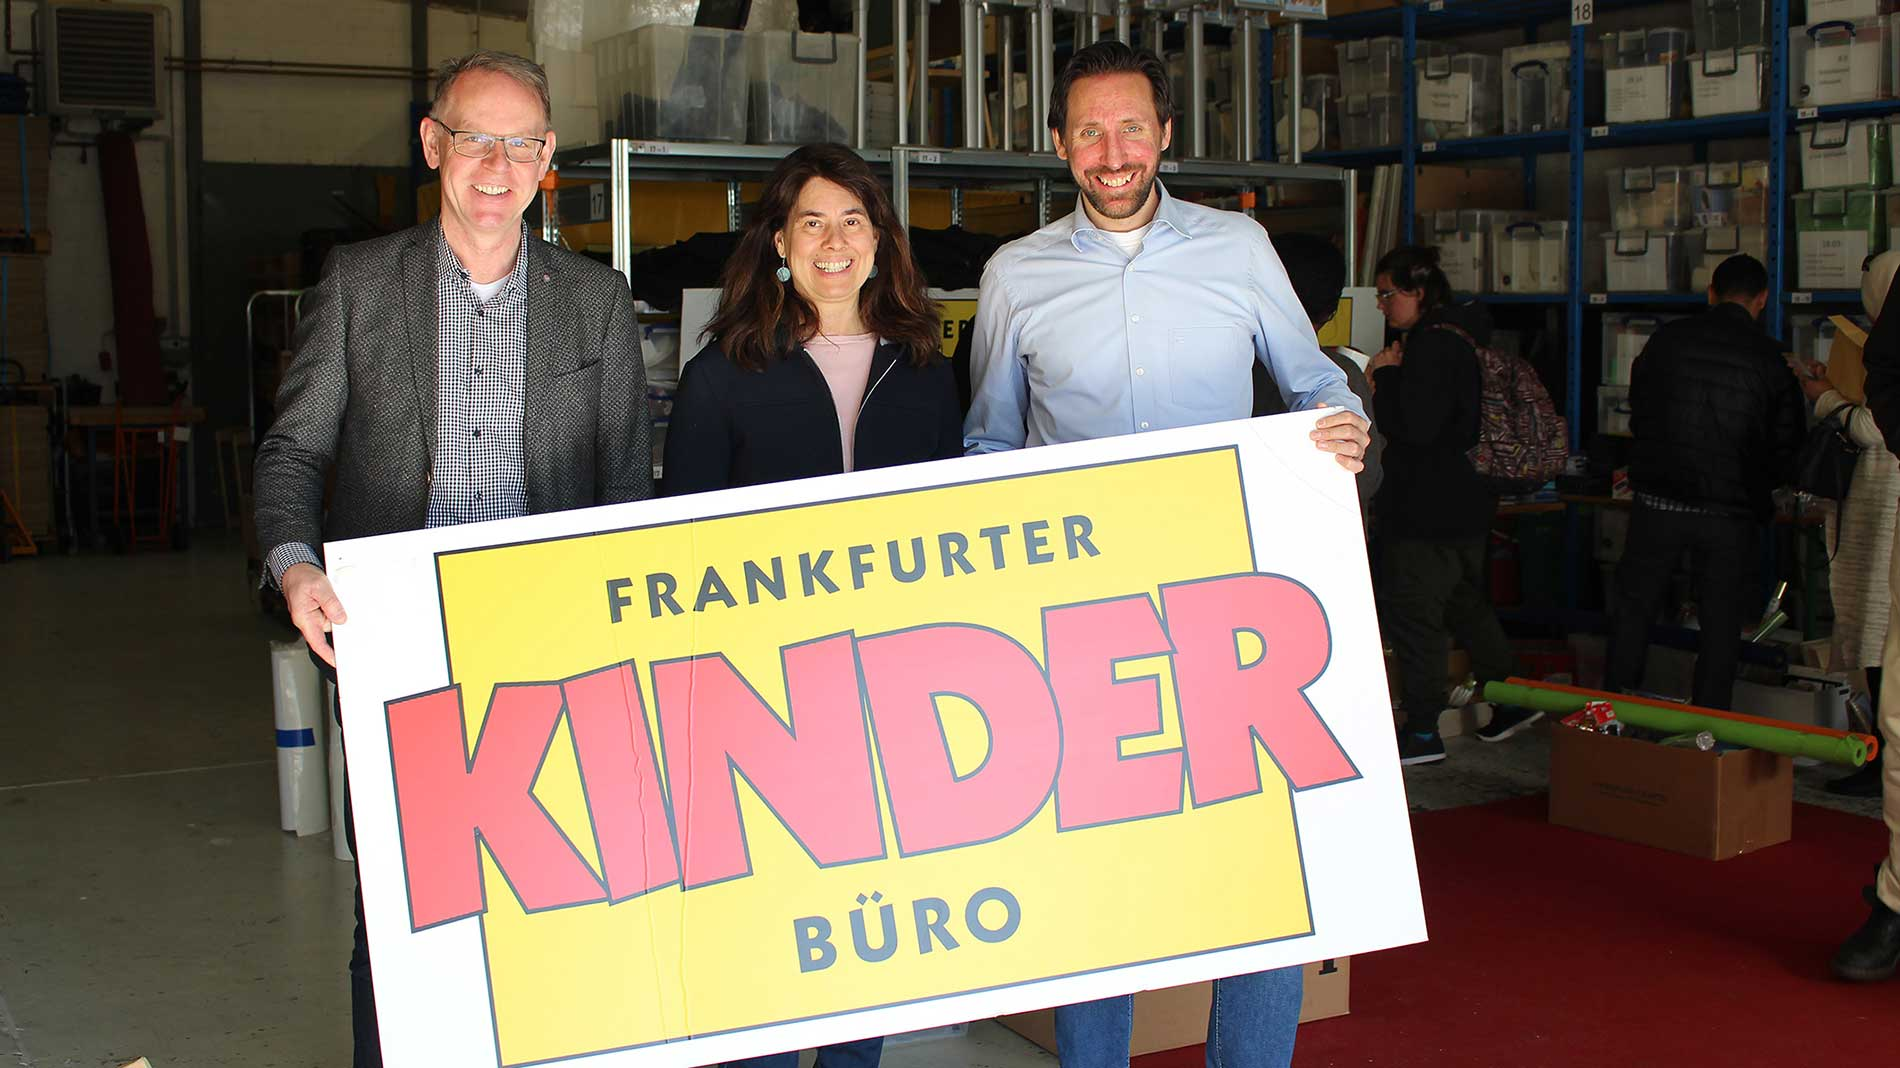 Michael Reichhold (Messe Frankfurt), Madeleine Michaelis (Kinderbüro), Christopher Huth (Messe Frankfurt) from left to right